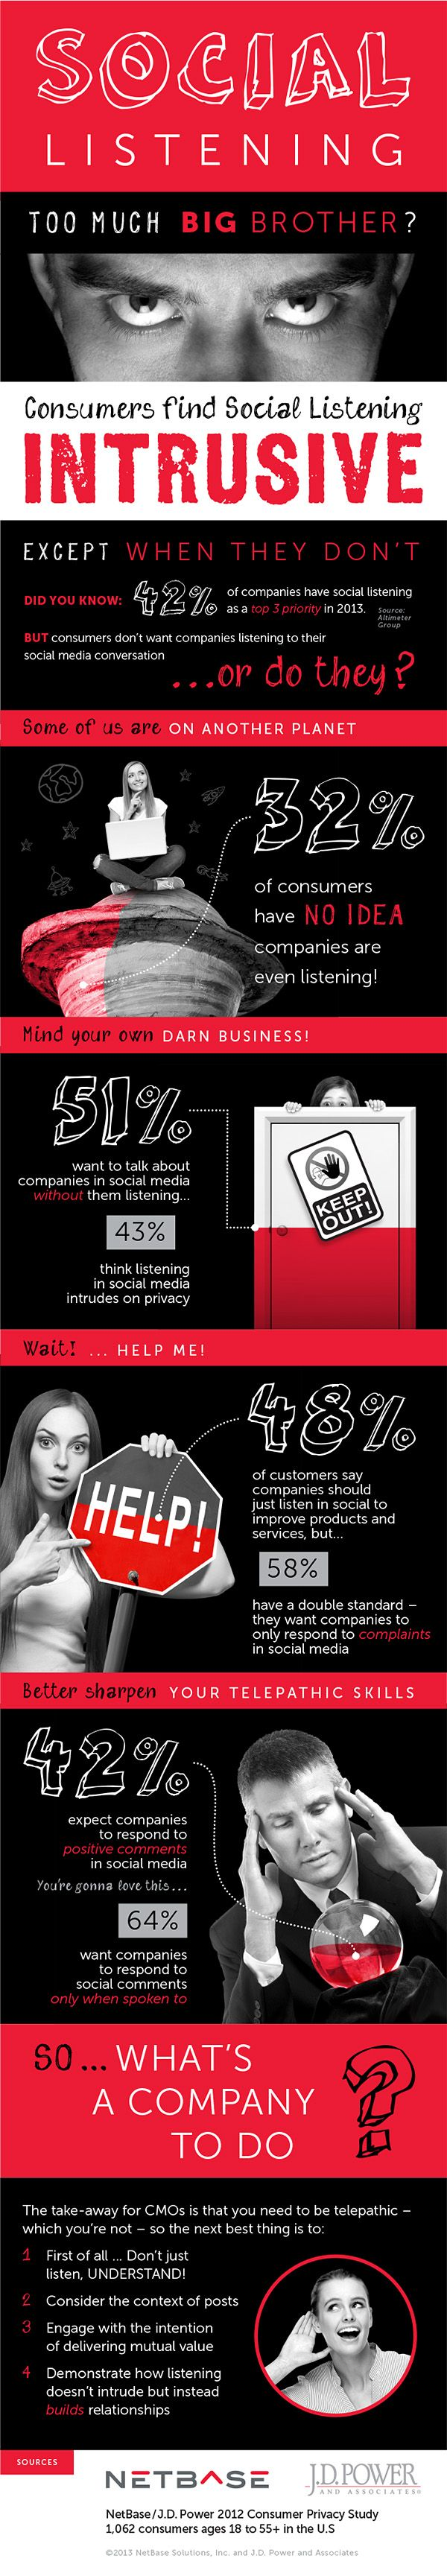 51% Of Customers Want To Talk About Brands On Social Media Without Them Listening #INFOGRAPHIC: Infographic Socialmedia, Infografia Infographic, Socialmedia Marketing, Social Media Infographic, Big Brother, Social Listening, Intrus Socialmedia, Media Monitor, Business Infographic